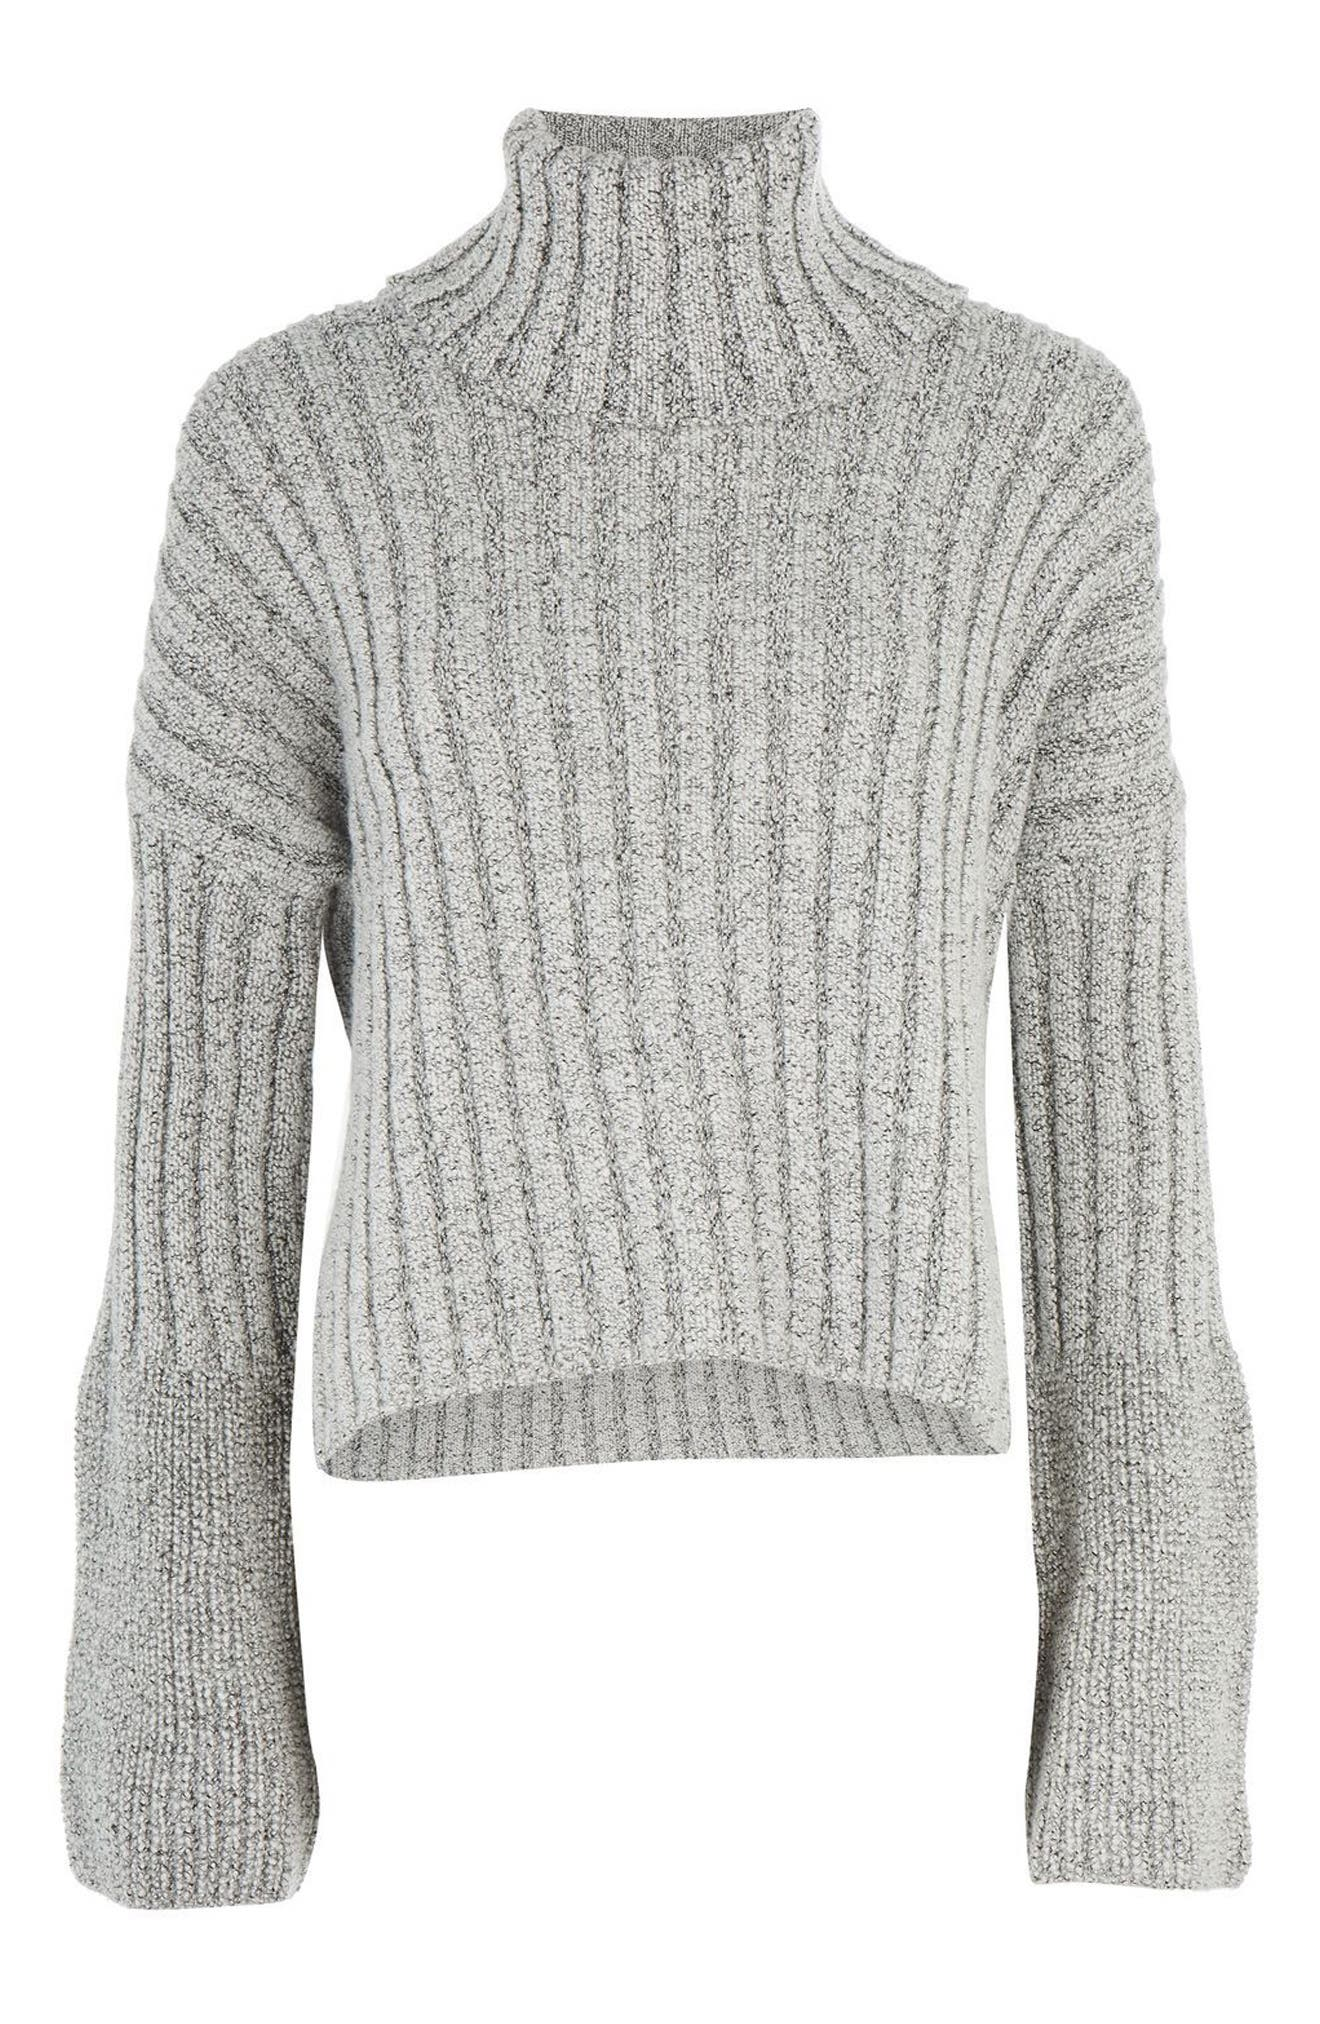 Alternate Image 1 Selected - Topshop Flare Cuff Turtleneck Sweater